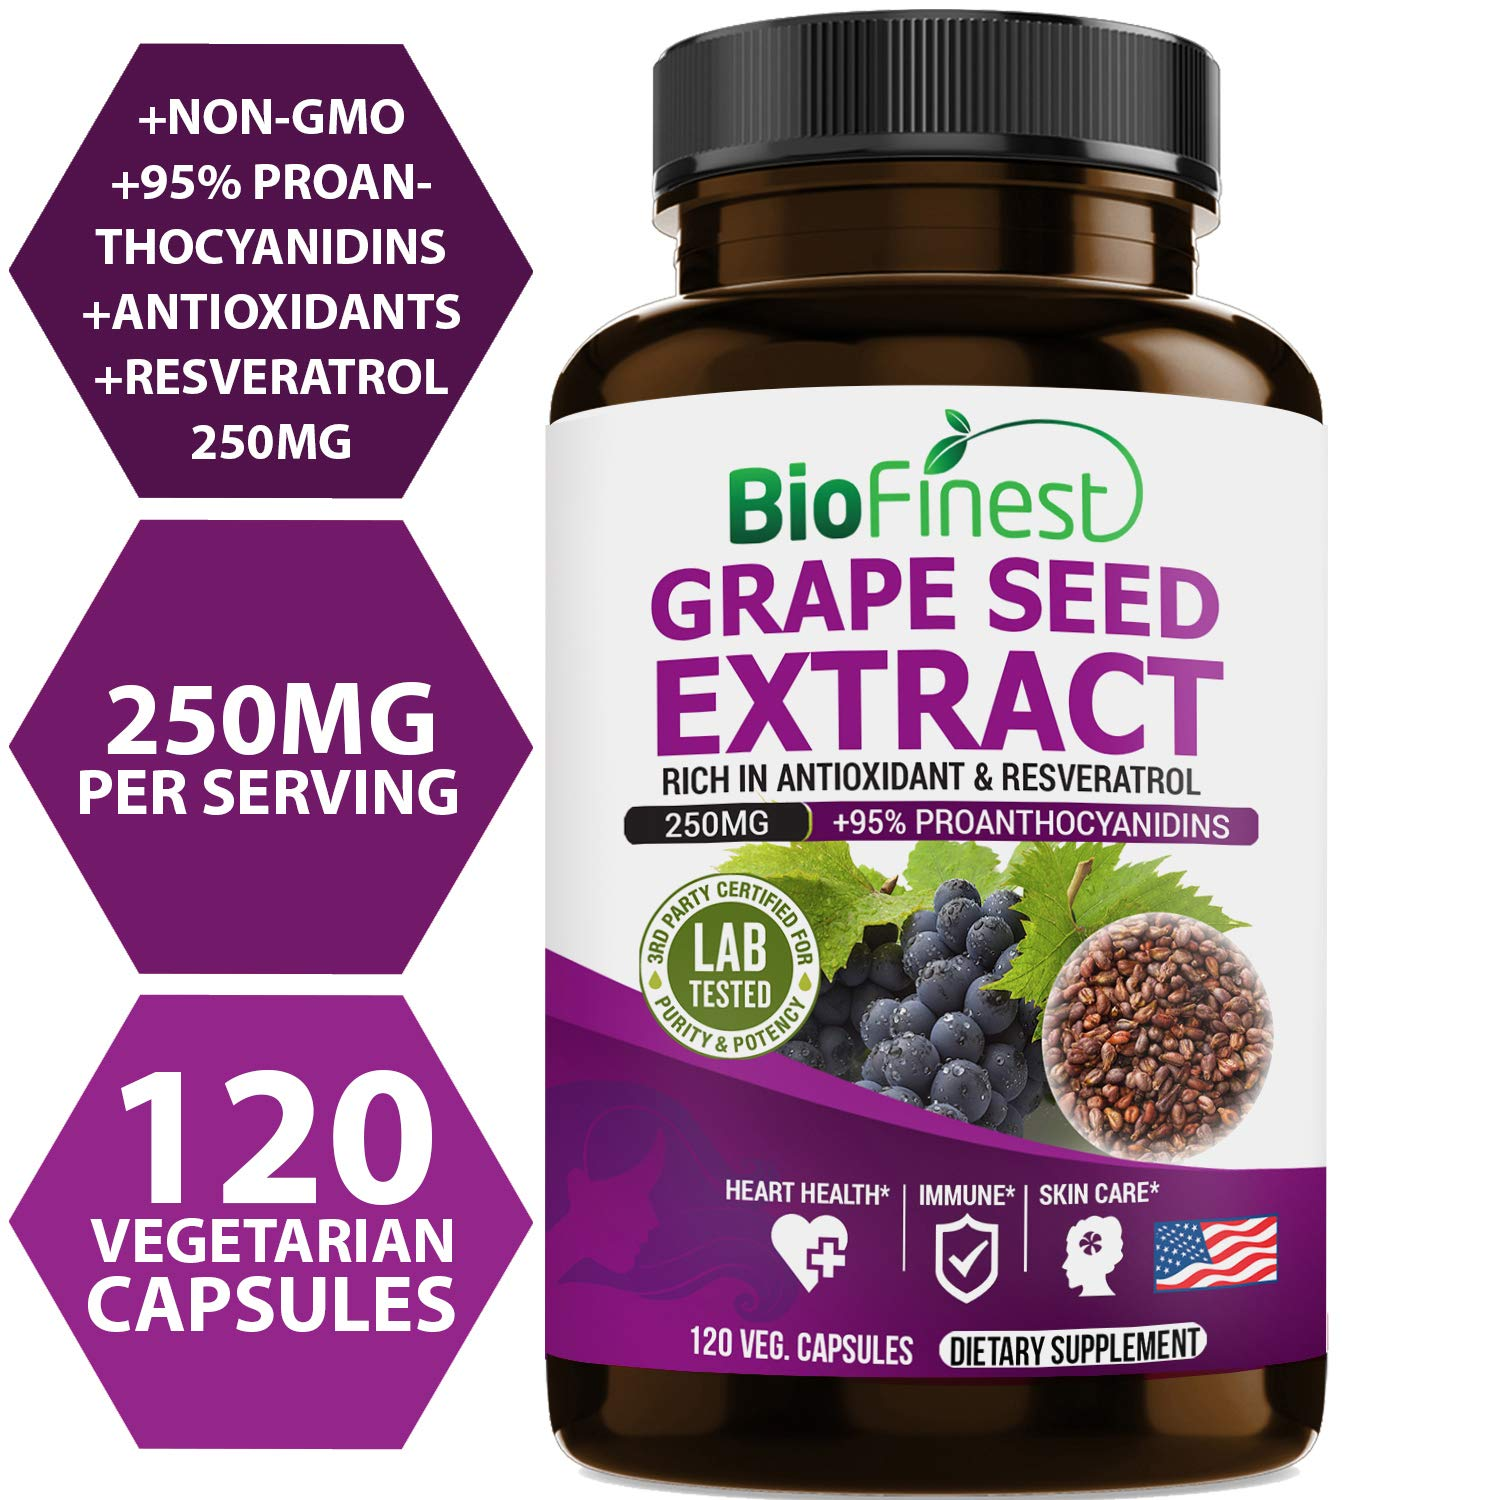 Biofinest Grape Seed Extract 250mg - 95% Proanthocyanidins - Pure Gluten-Free Non-GMO - Made in USA - Grape Seeds Supplements for Healthy Heart, Blood Pressure, Skin Care (120 Vegetarian Capsules)